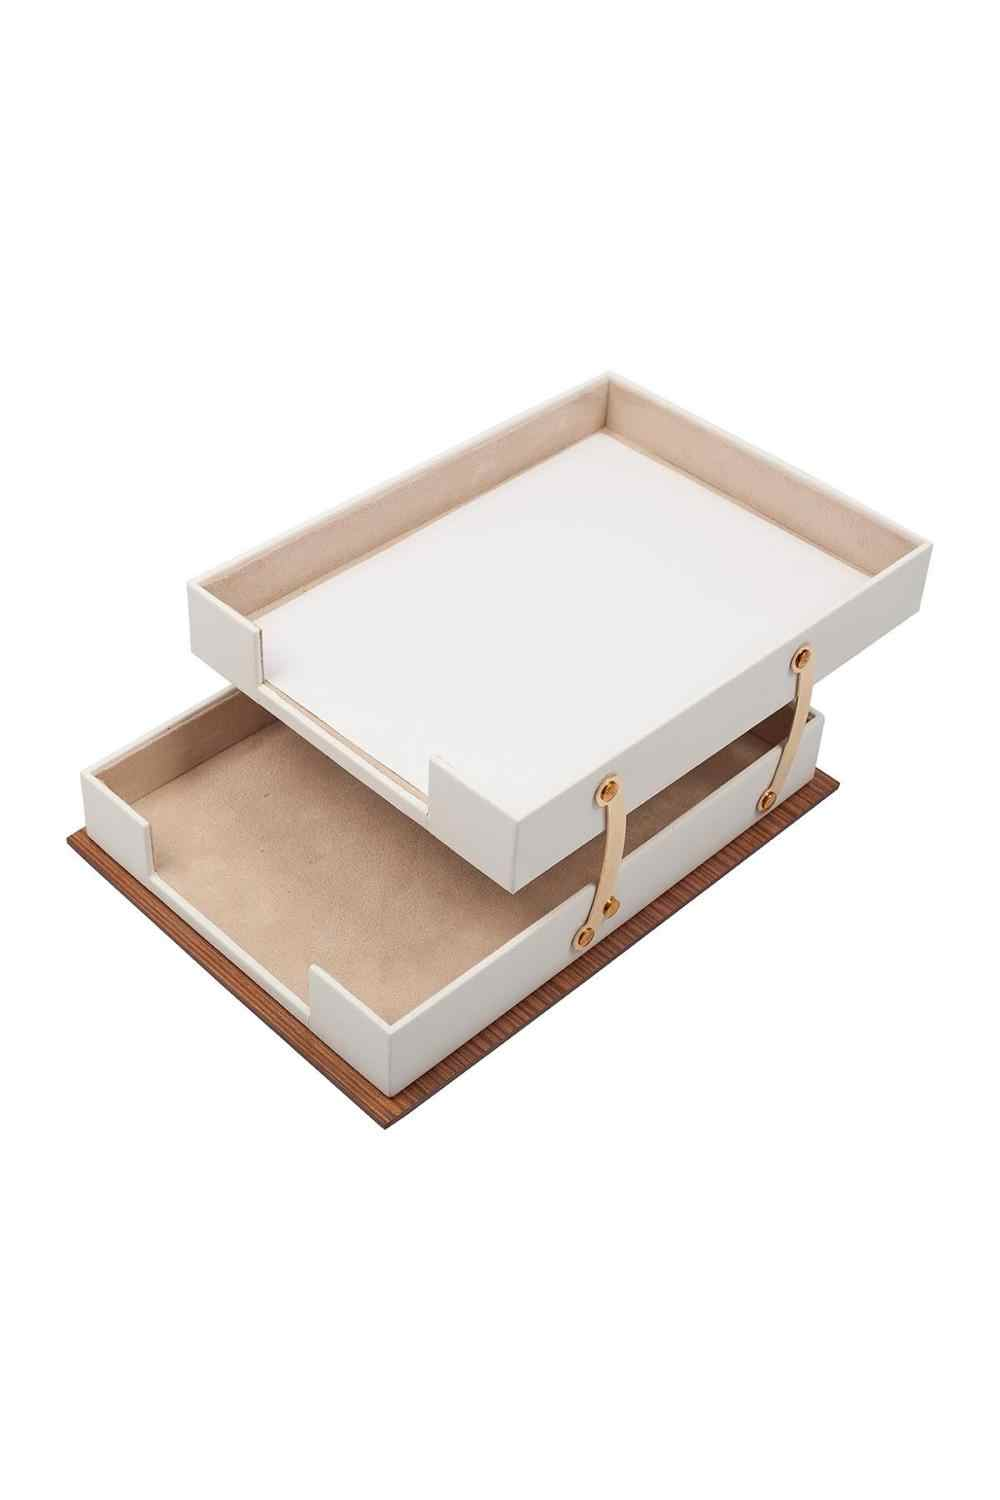 Star Luxury Leather Wooden 11 Pieces Desk Set With Double Document Tray Desk Organizer Office Accessories Desk Accessories Desk Set Aliexpress